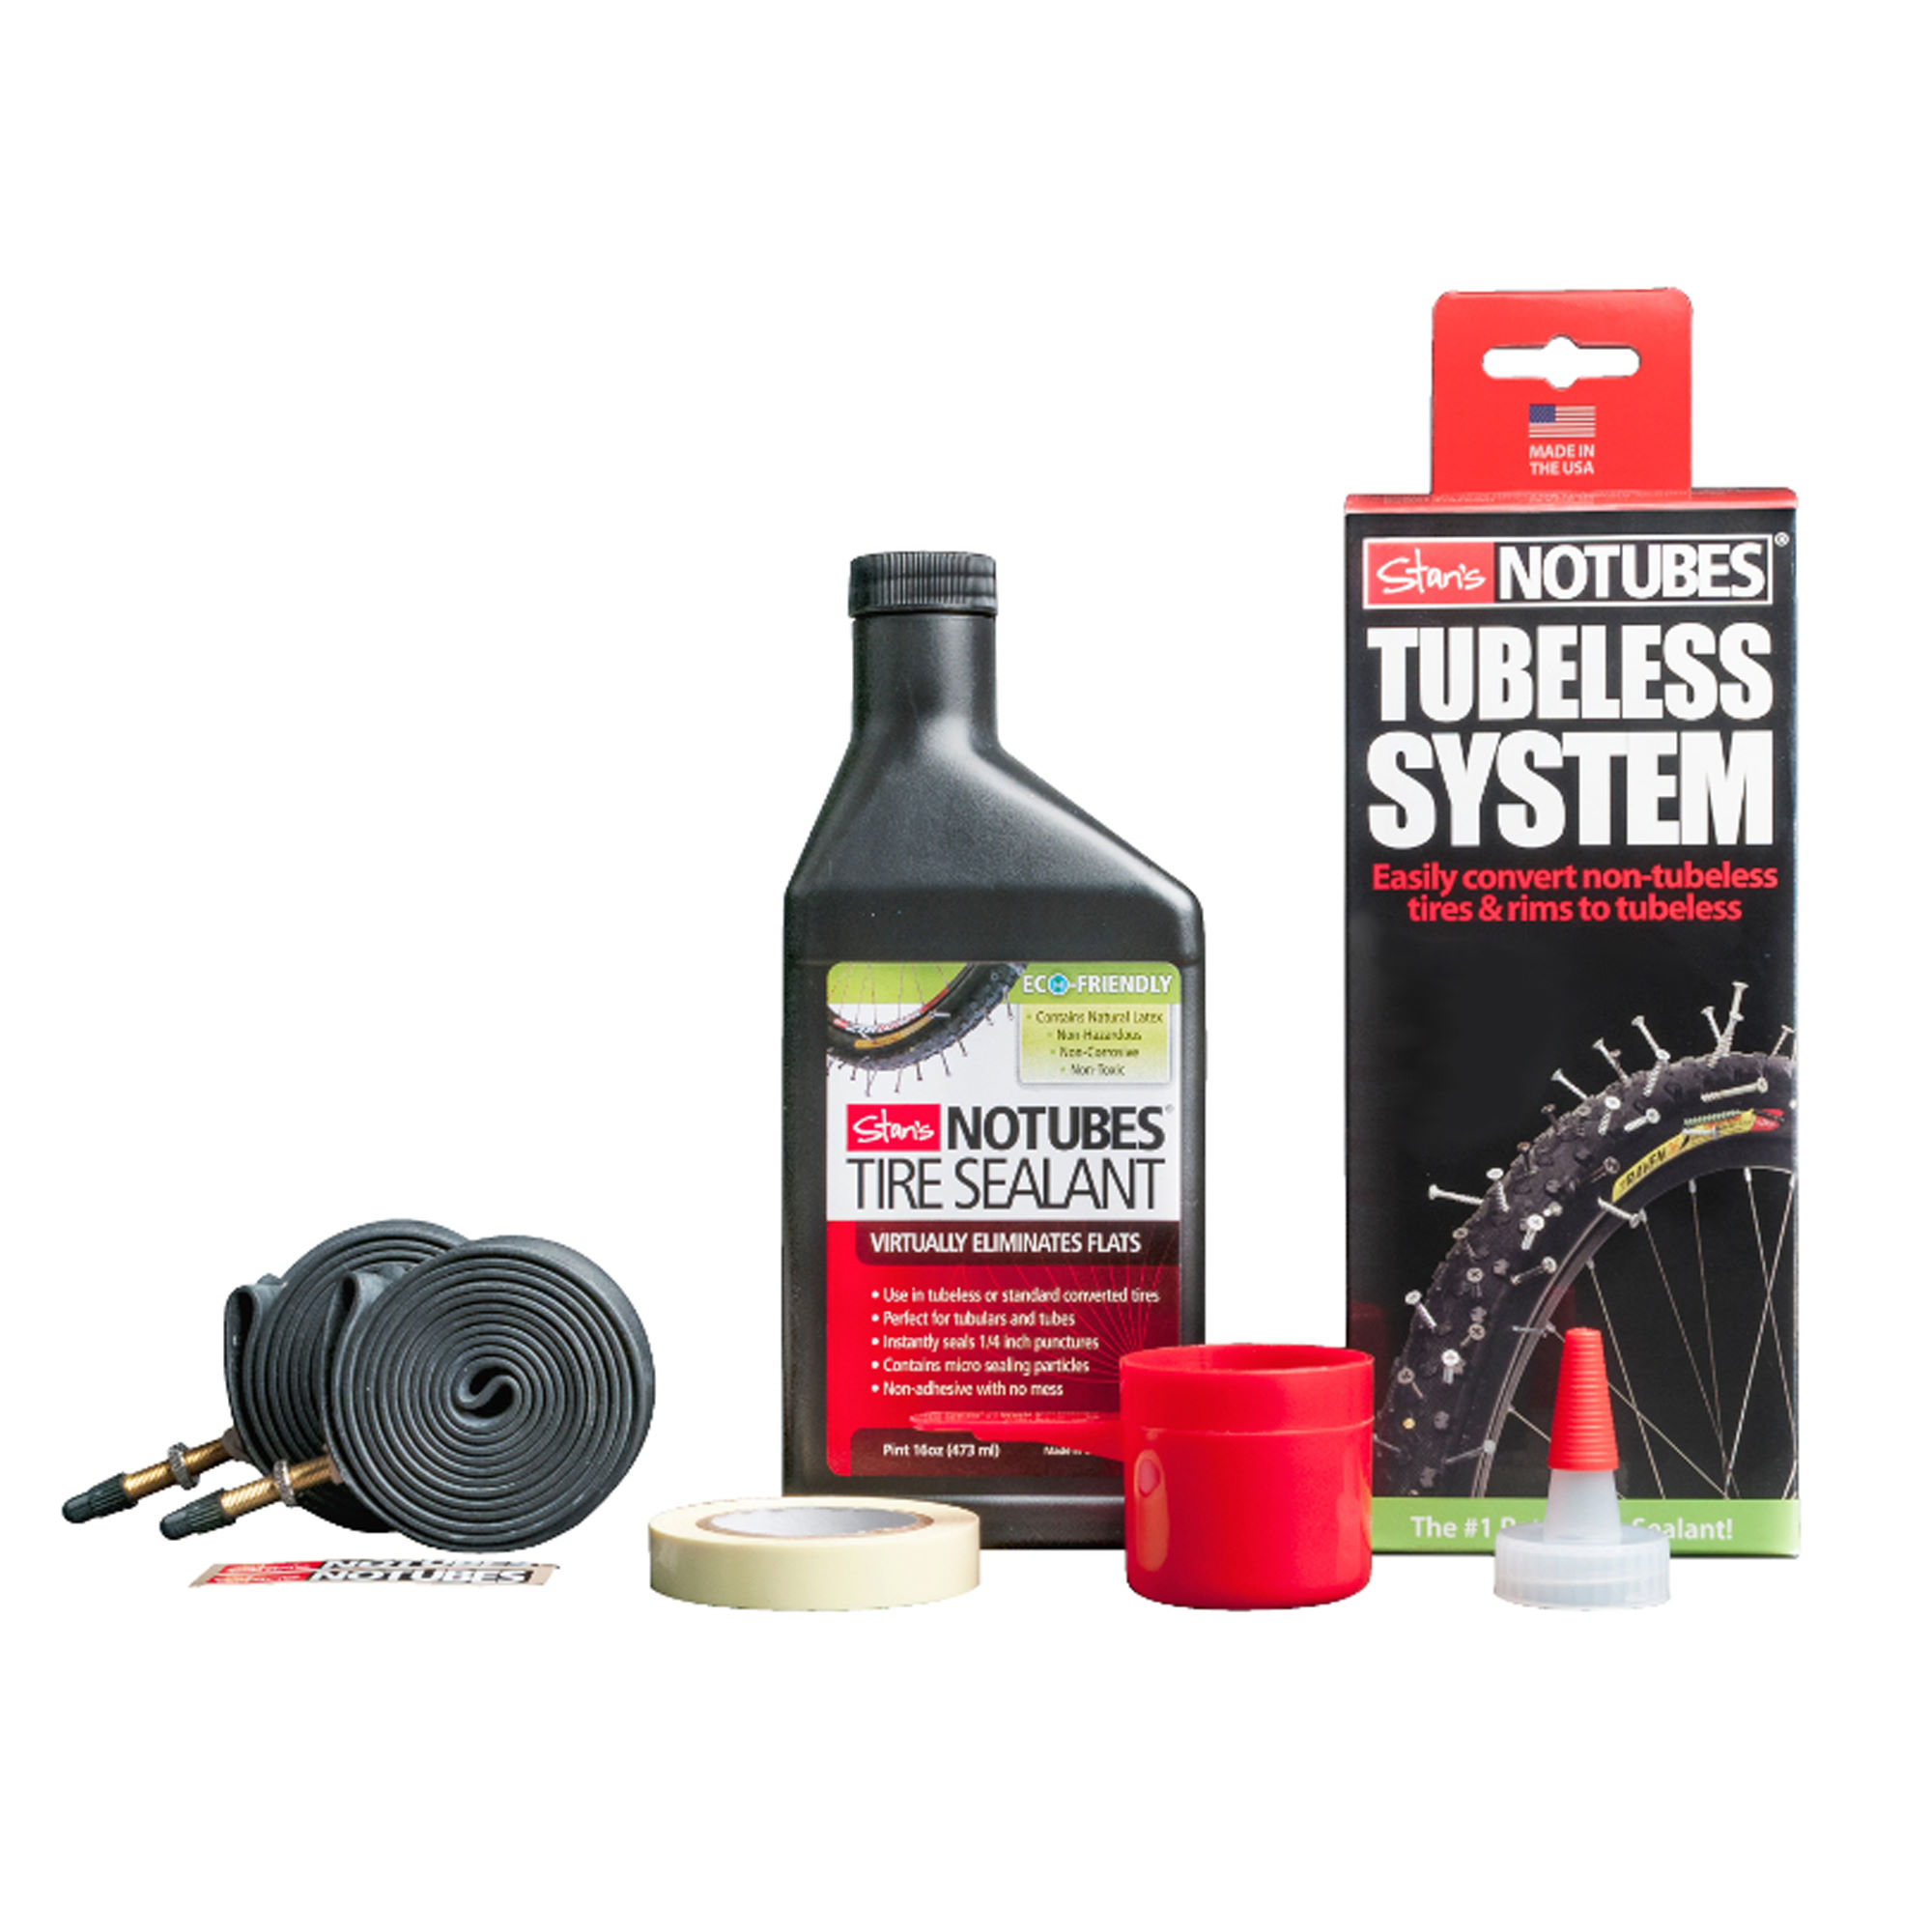 Wiggle | Stans No Tubes Tubeless Kit | Tubeless Accessories